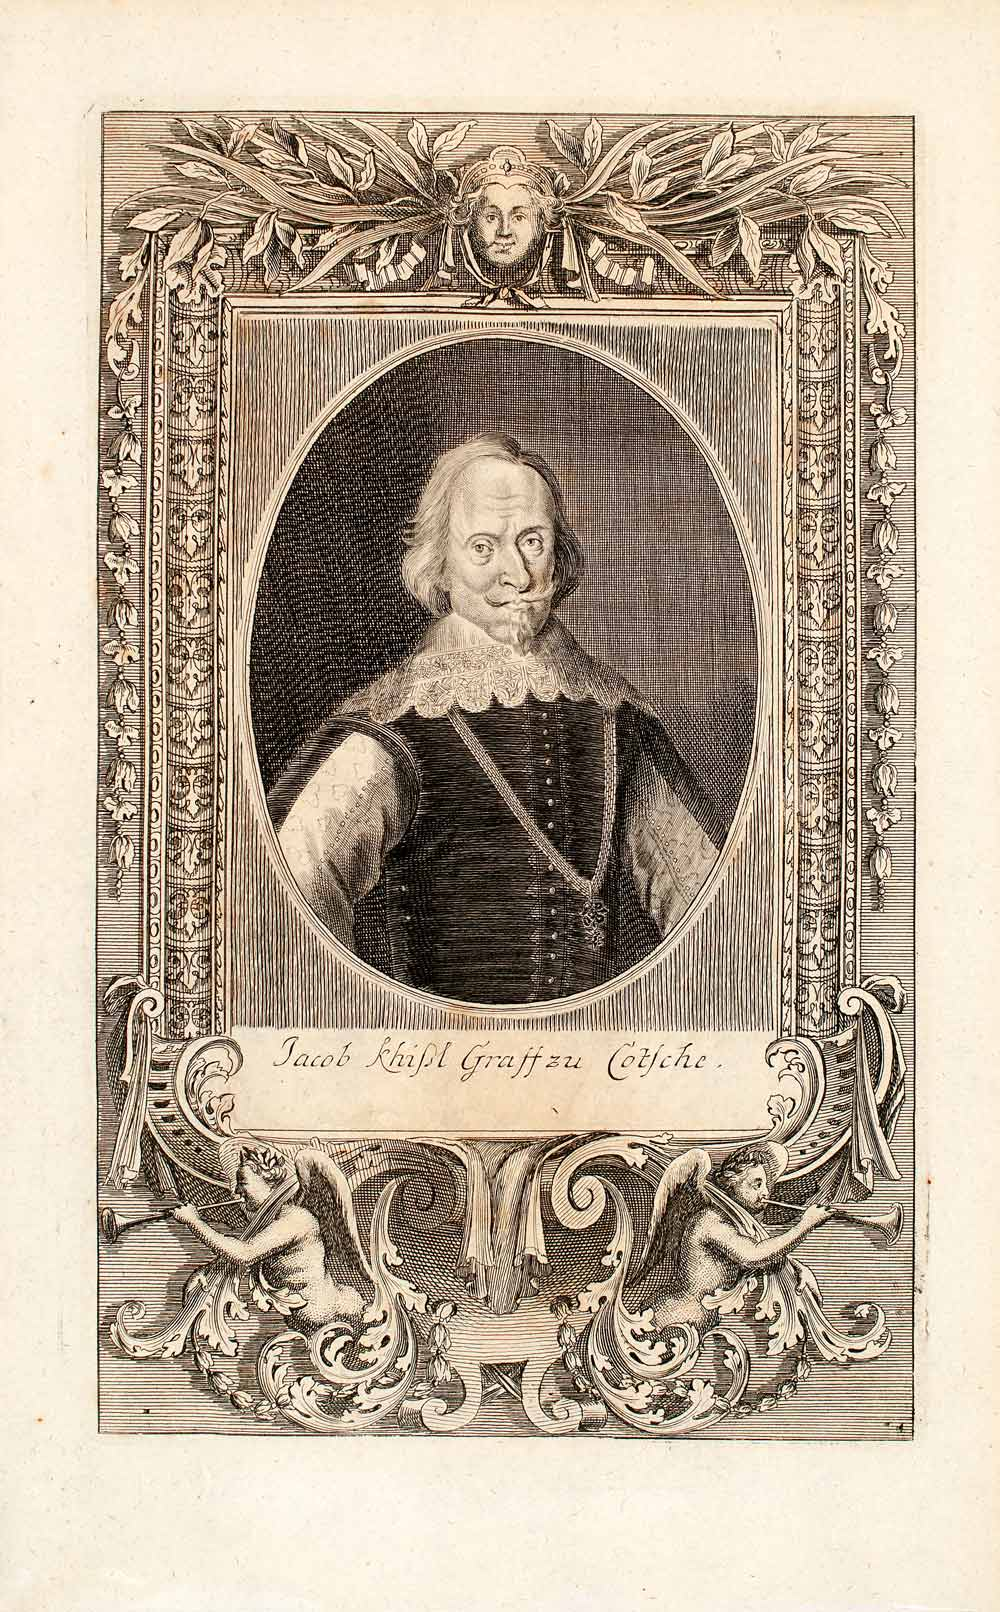 1722 Copper Engraving Portrait Jacob Khisl Graf Zu Cotsche European EUM4